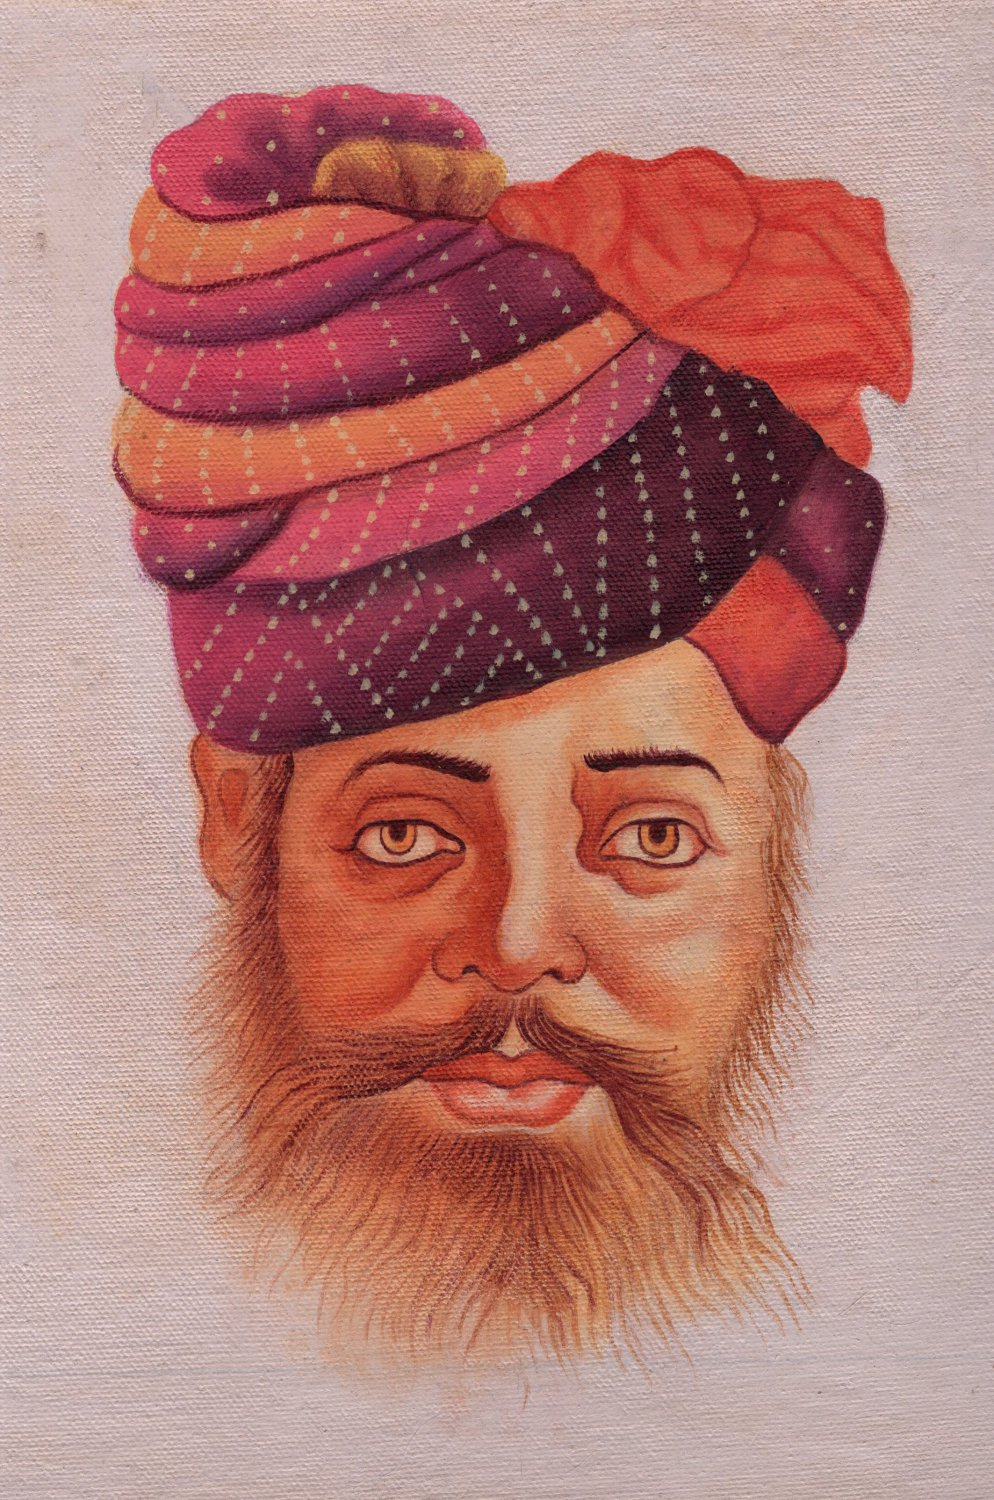 Rajasthani Miniature Painting Handmade Indian Rajput Turban Pagri Portrait Art